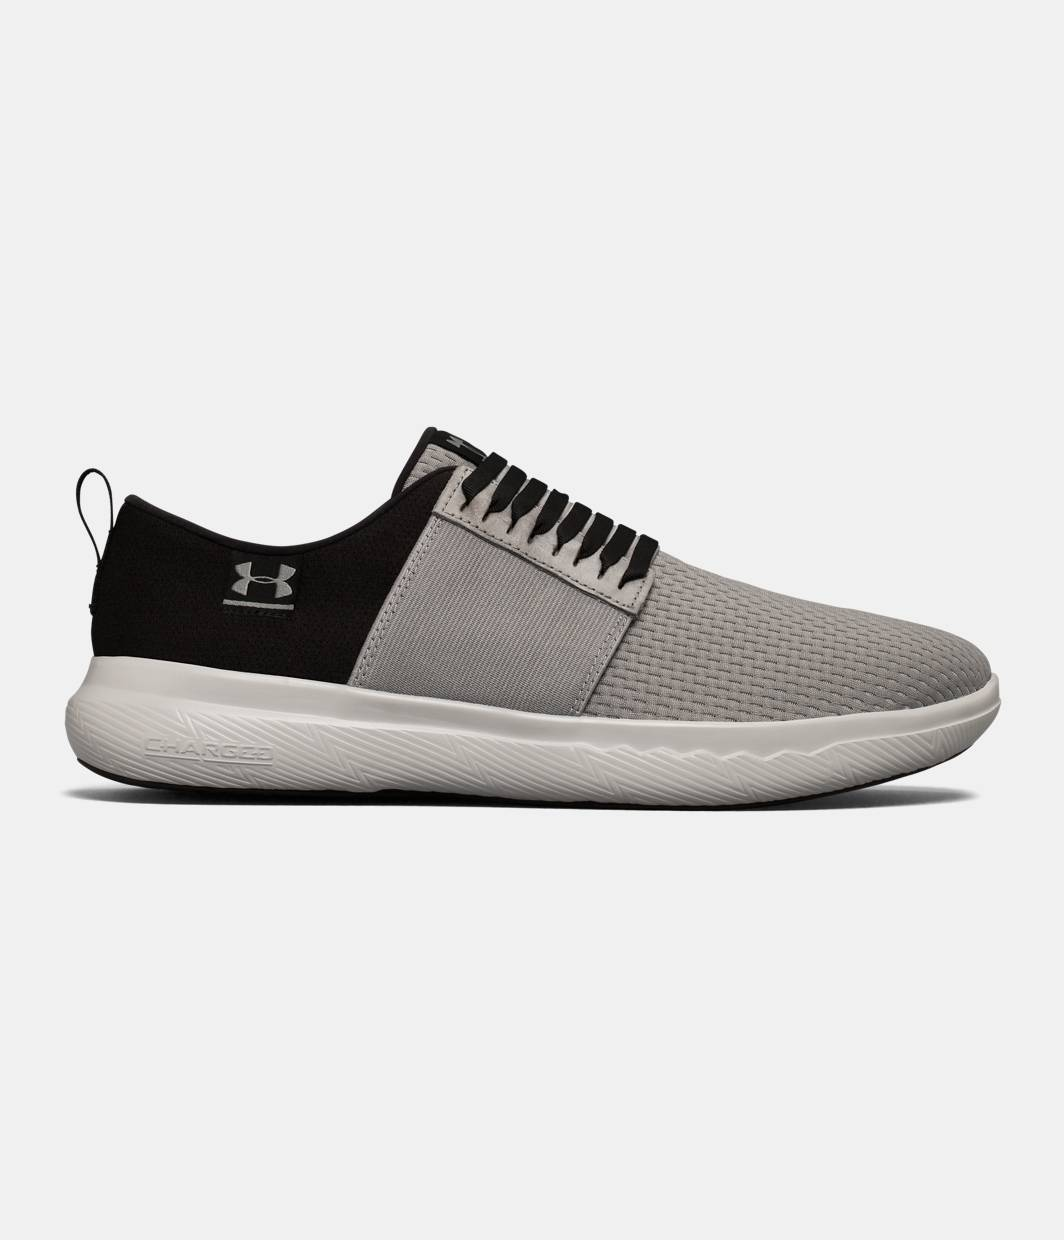 outlet reliable Under Armour Charged 24/7 ... Women's Shoes free shipping reliable outlet 2015 new low price cheap online for cheap sale online SpkcN